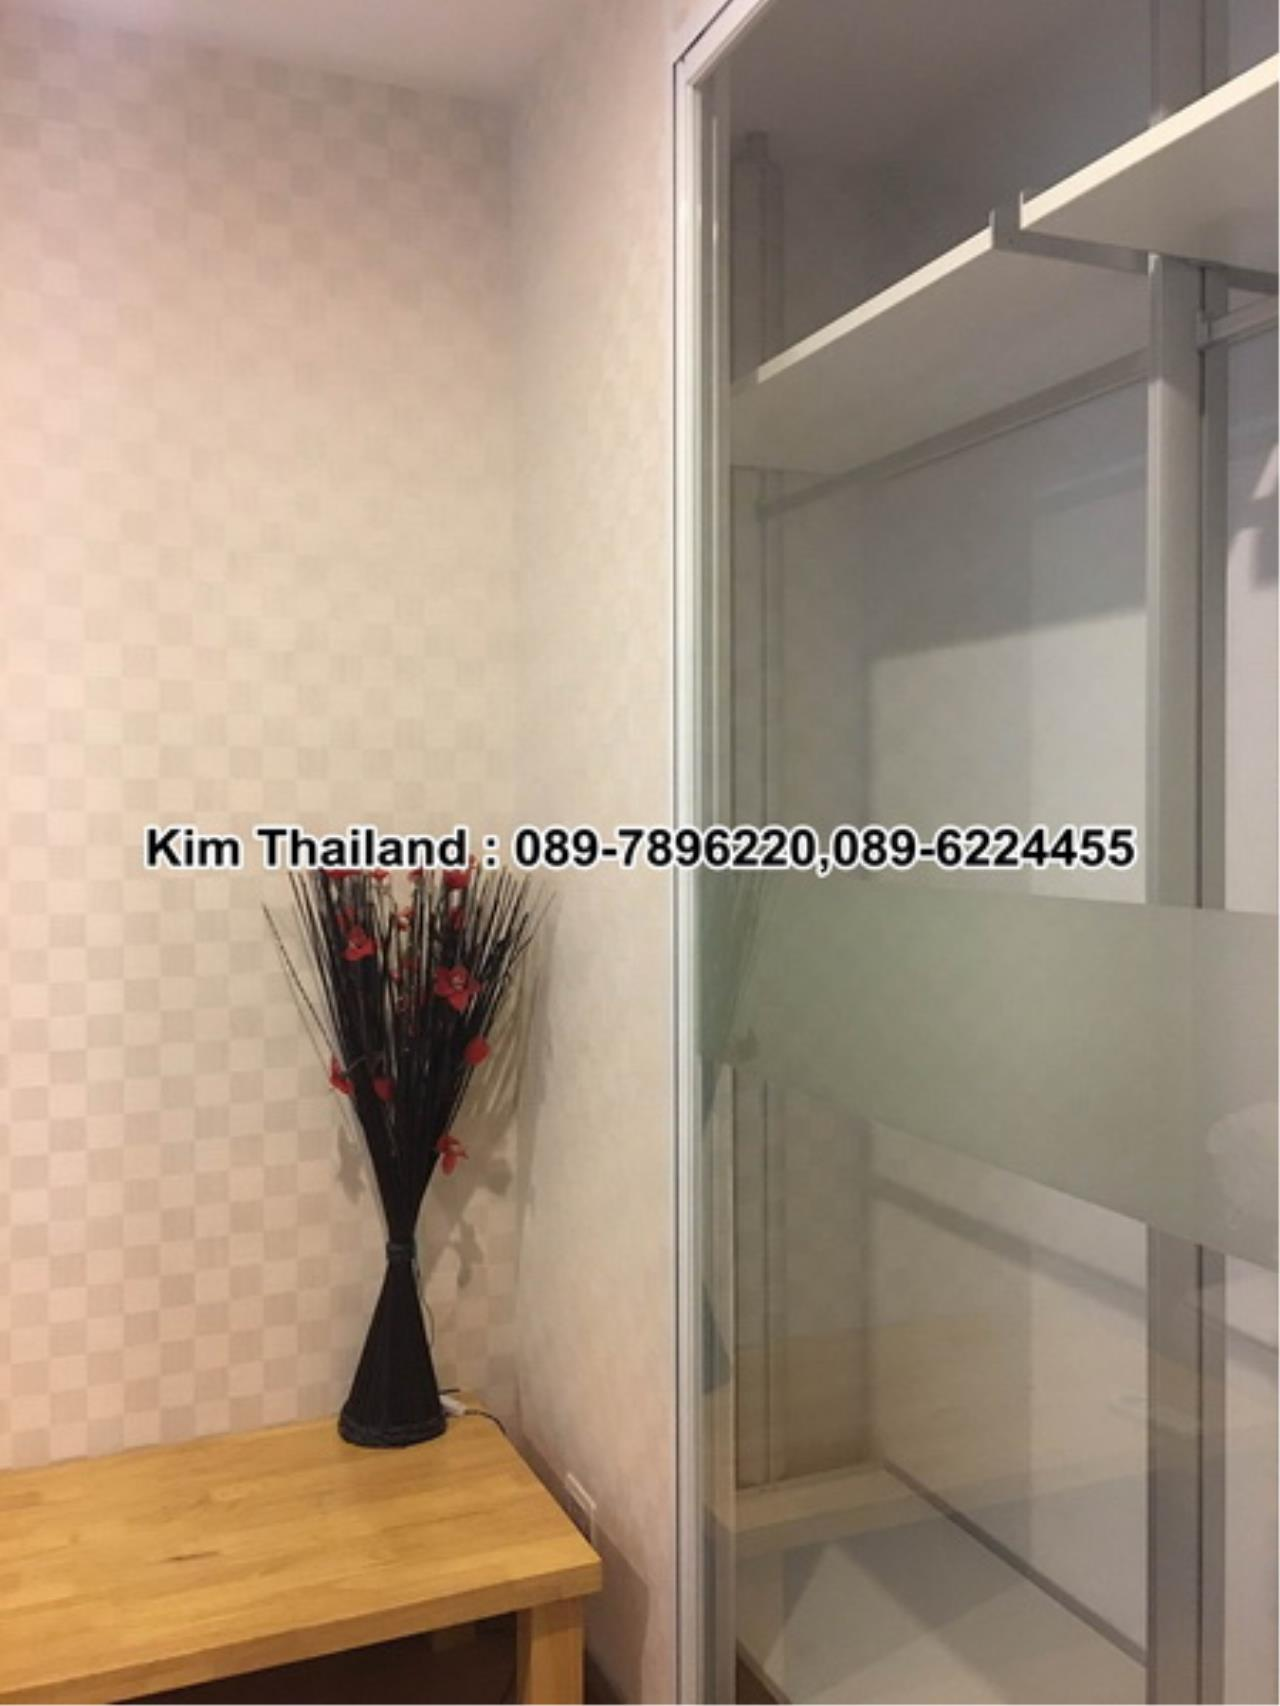 BKKcondorental Agency's For rent, Condo The Parkland Grand Asoke-Petchaburi., Area 35 sq.m. 1 bedroom. Rental 16,500 THB per month. 3